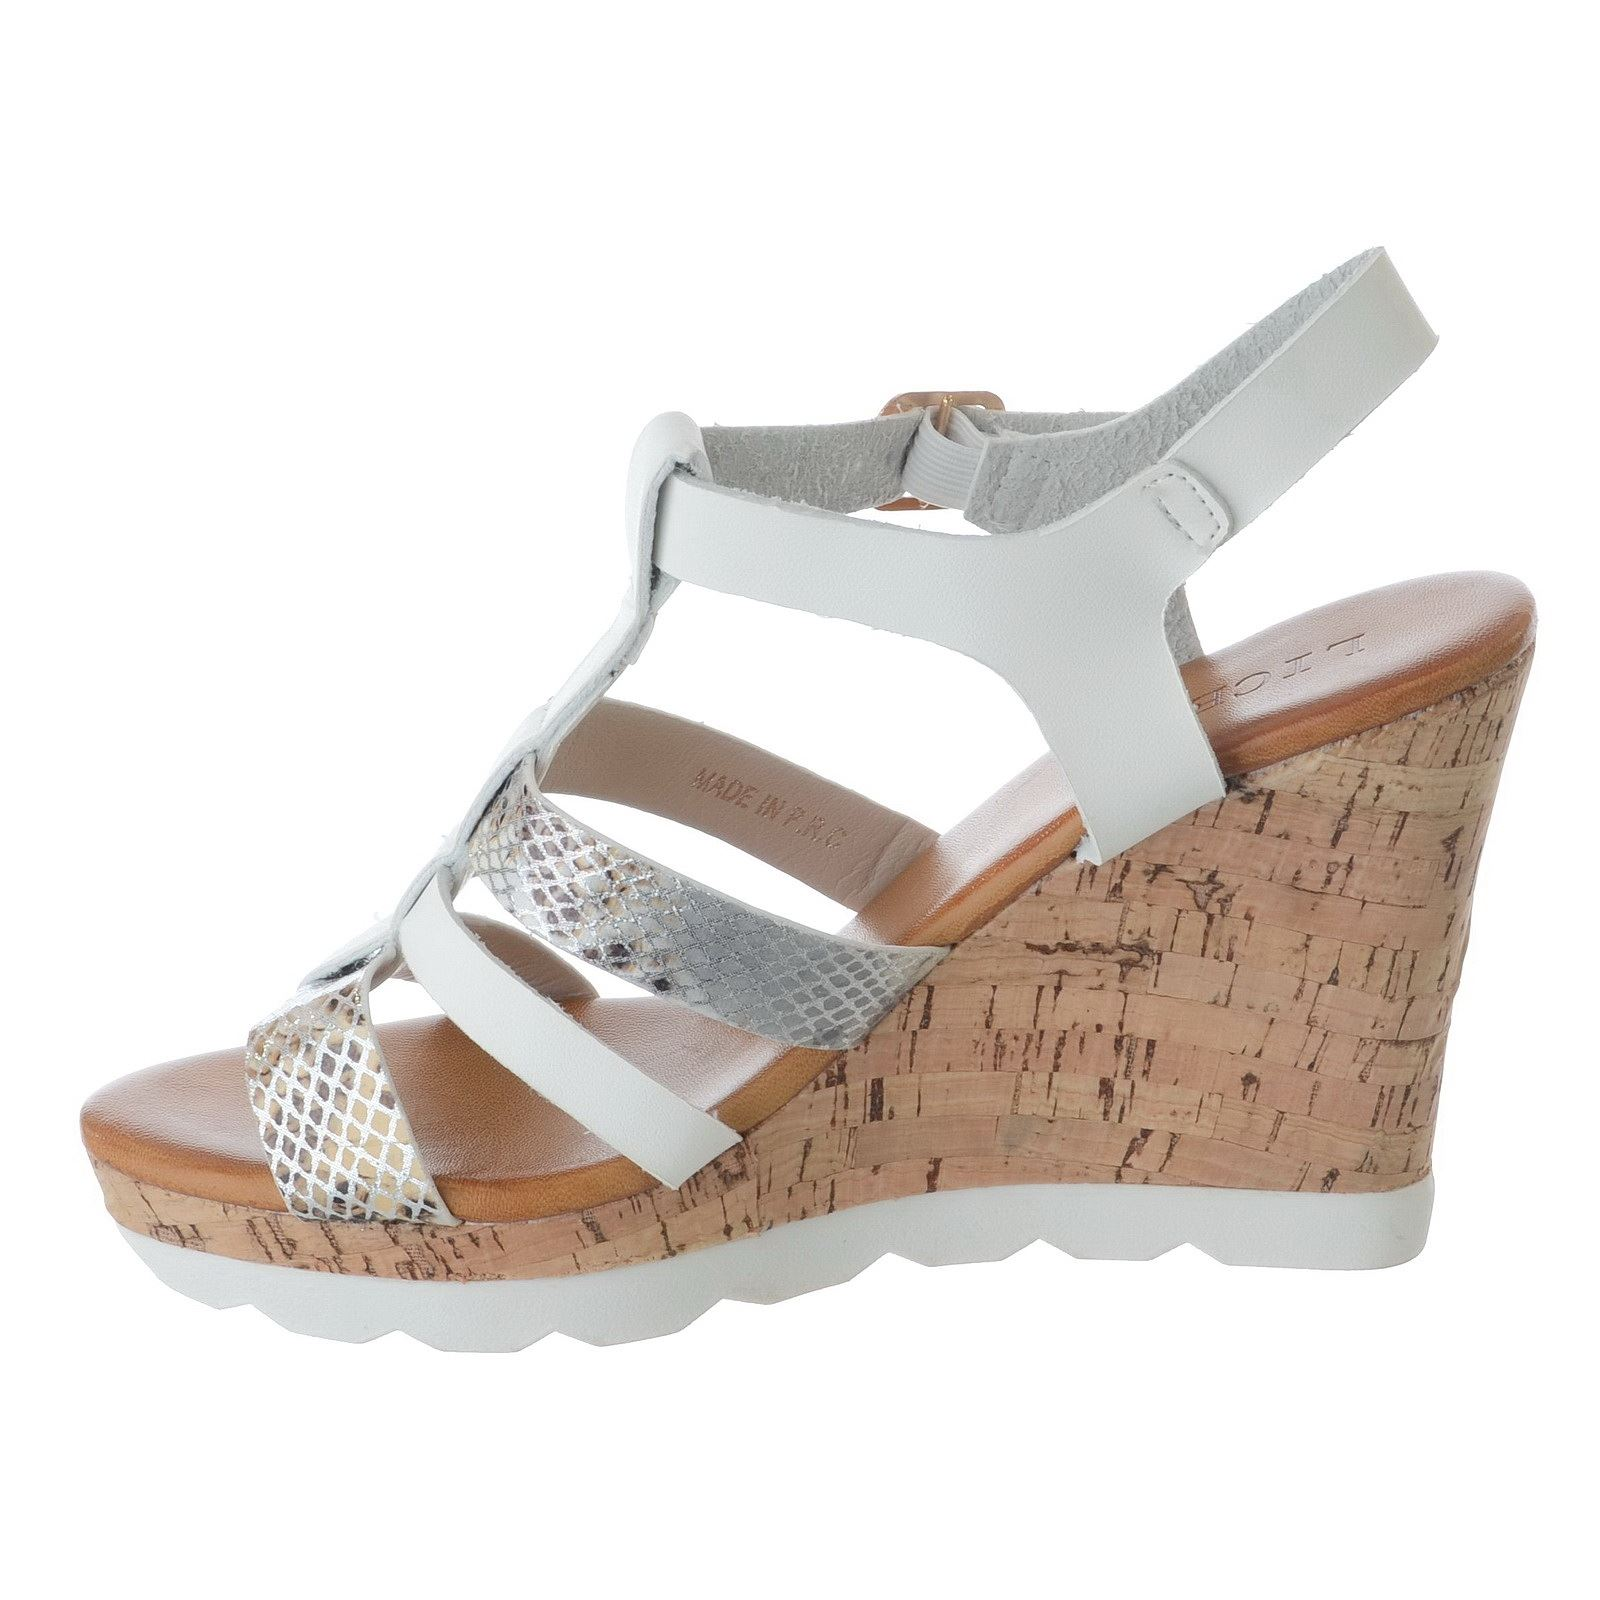 WOMENS-LADIES-STRAPPY-HIGH-CORK-WEDGE-HEEL-ANKLE-STRAP-BUCKLE-SANDALS-SHOES-SIZE